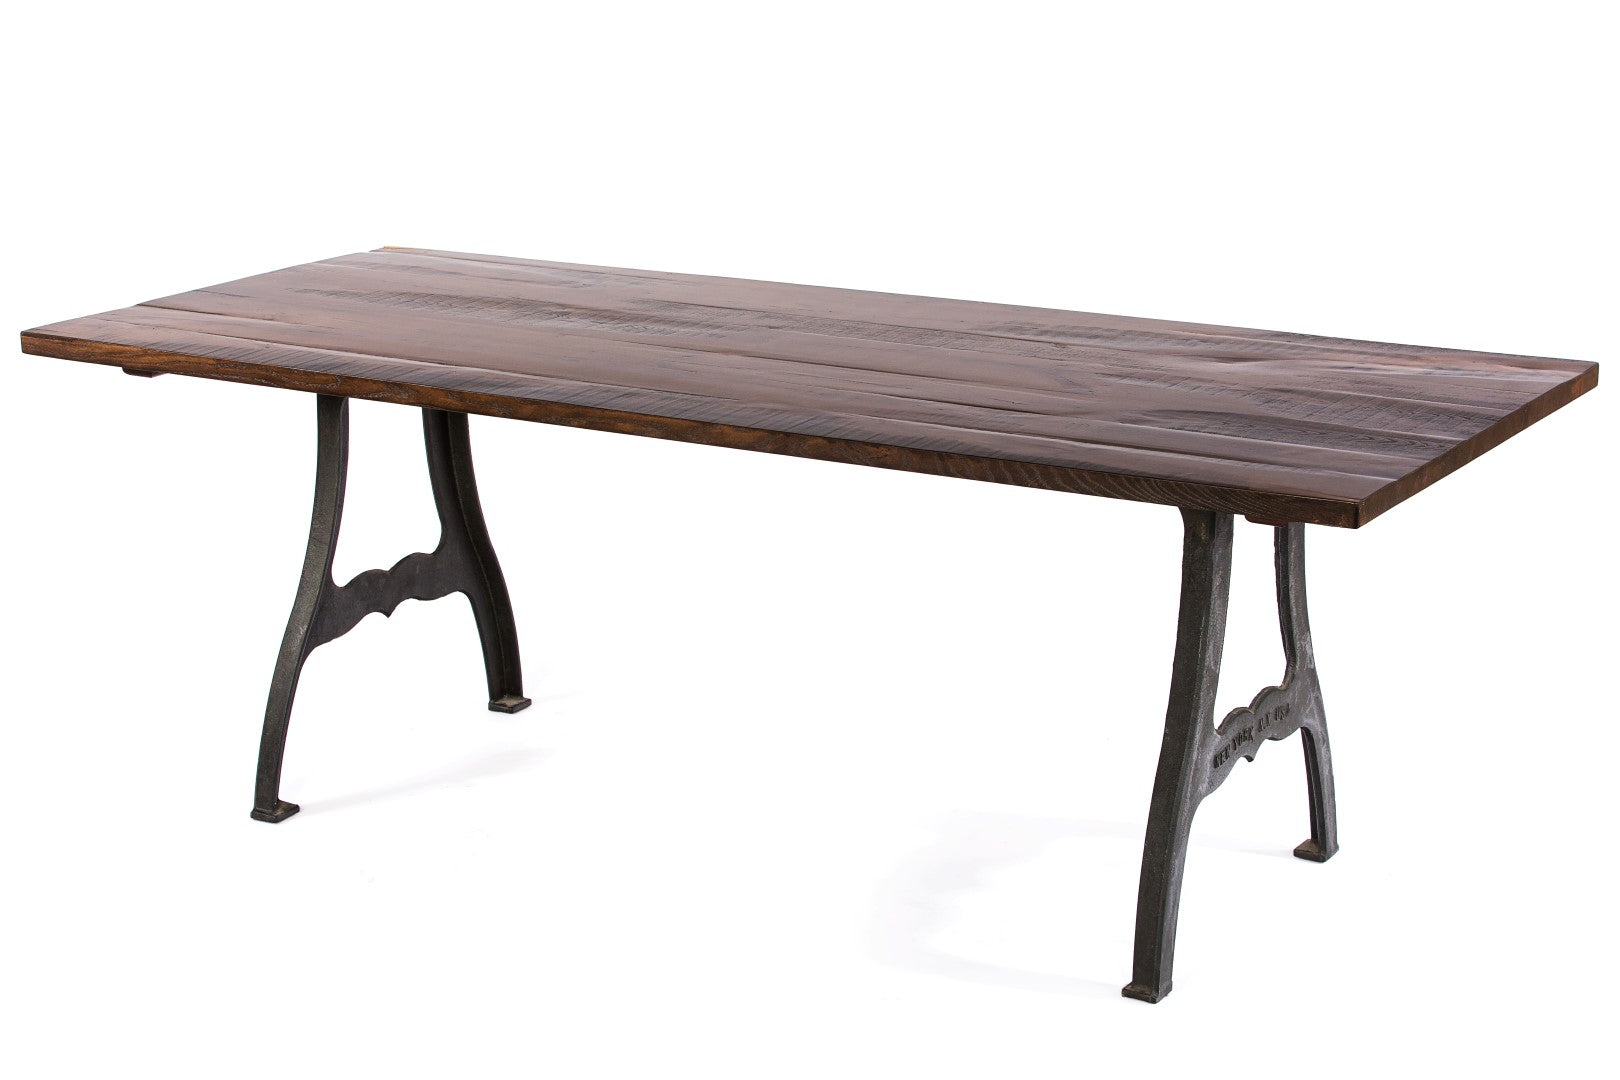 Wood Tables | Williamsburg Table | Espresso Ash | Pure White | CUSTOM SIZE L 96 W 30 H 30 | 1.75""